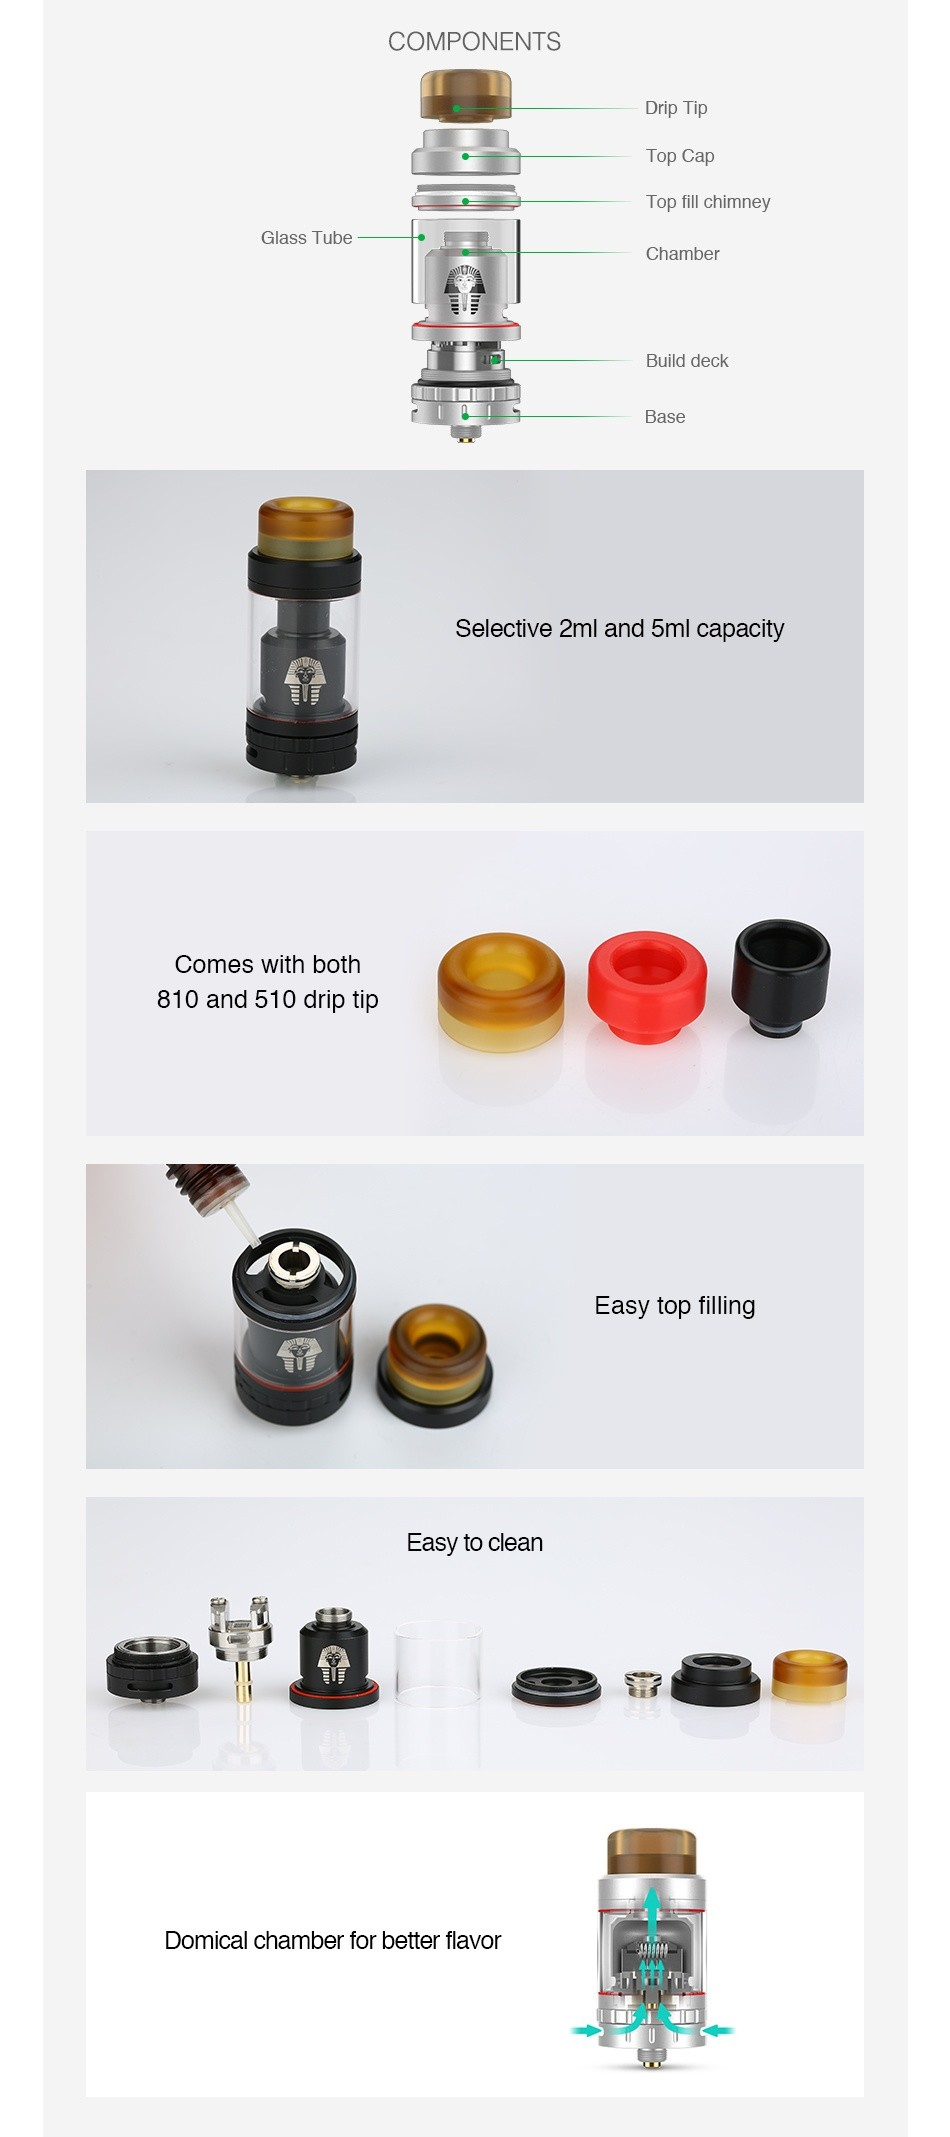 Digiflavor Pharaoh Mini RTA 2ml COMPONENTS Drip Tip Top Cap Top fill chi Glass Tube Chamber Build deck Base Selective 2ml and 5ml capacity Comes with both 810 and 510 drip tip Easy top filling Easy to clean Domical chamber for better flavor